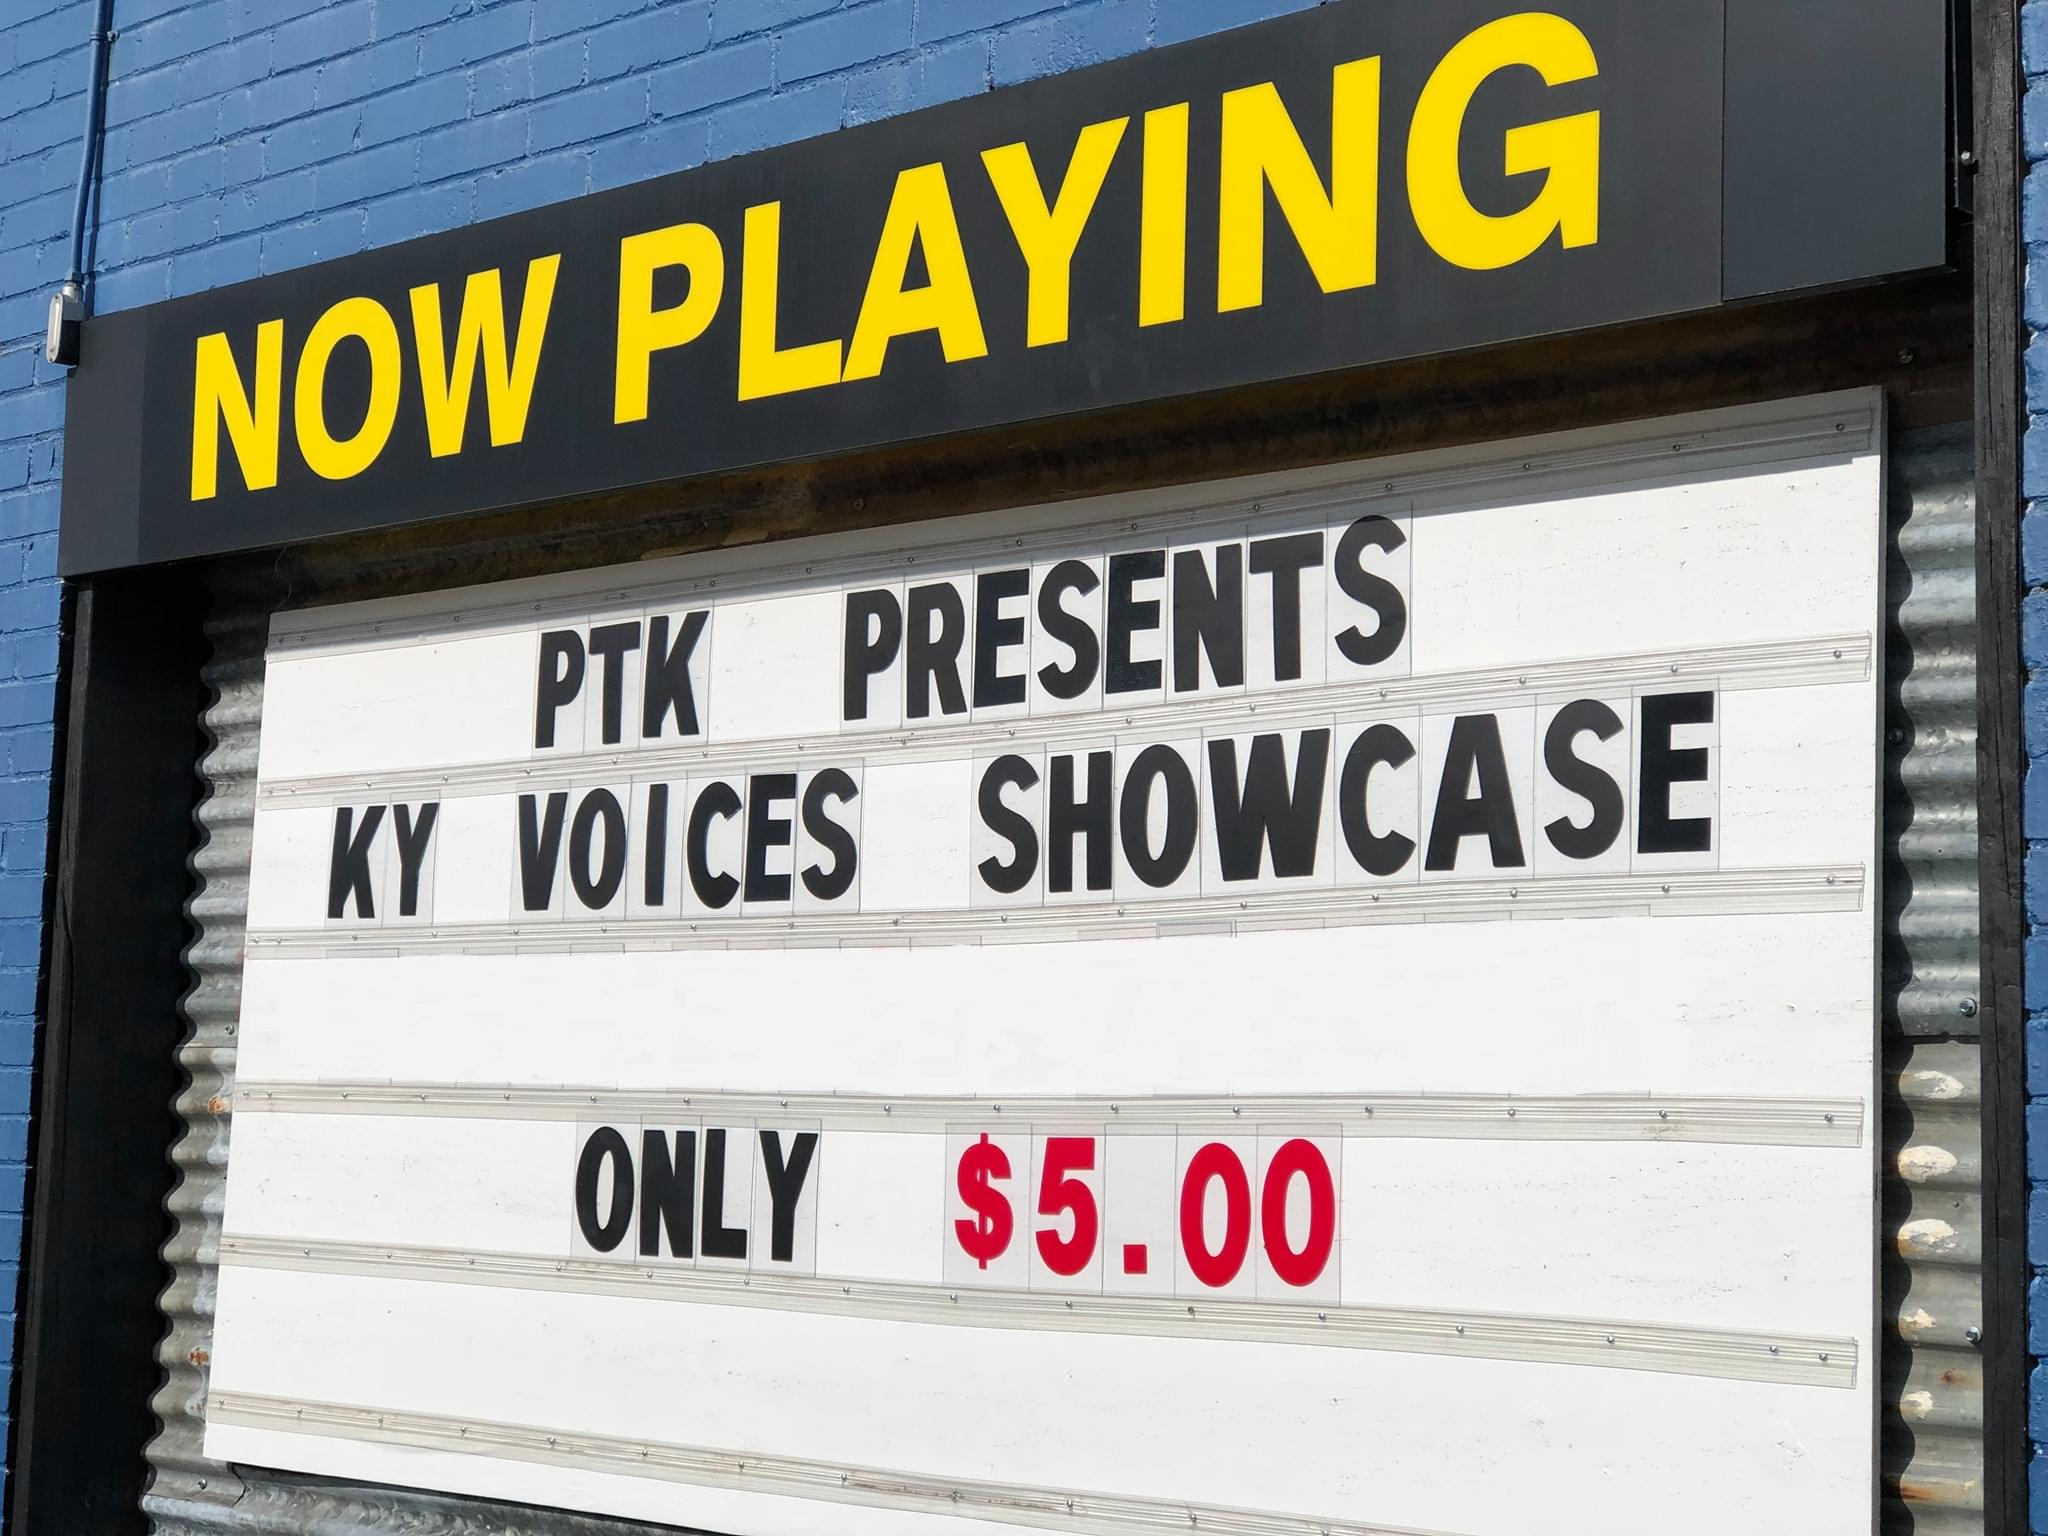 Public Theatre offers Kentucky Voices performance